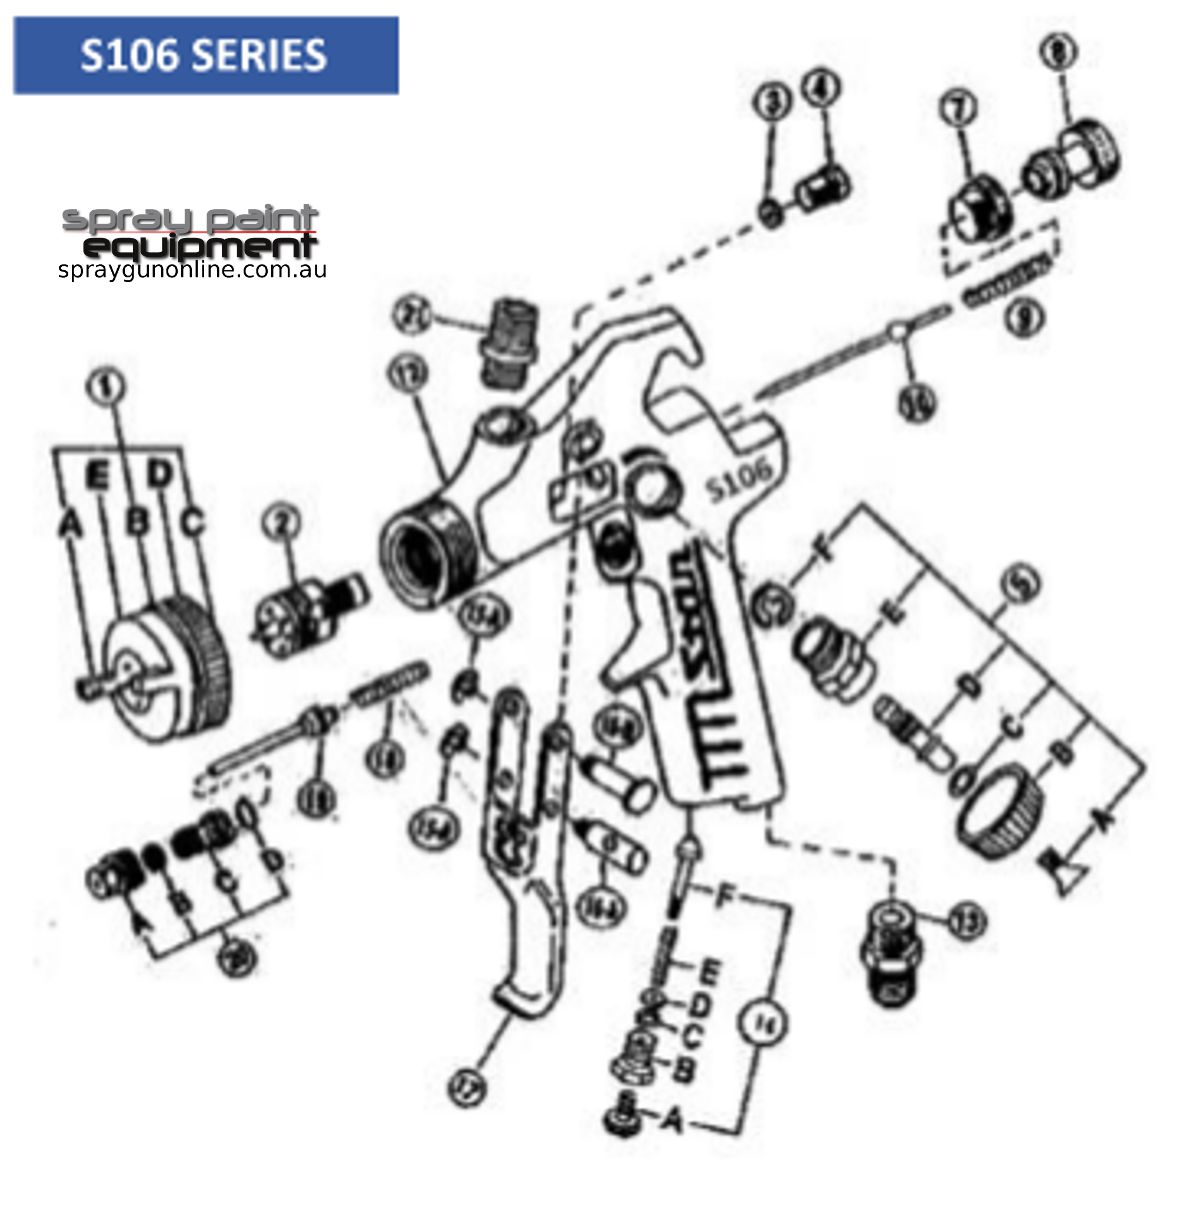 Spare parts schematic for Star S106 spray guns